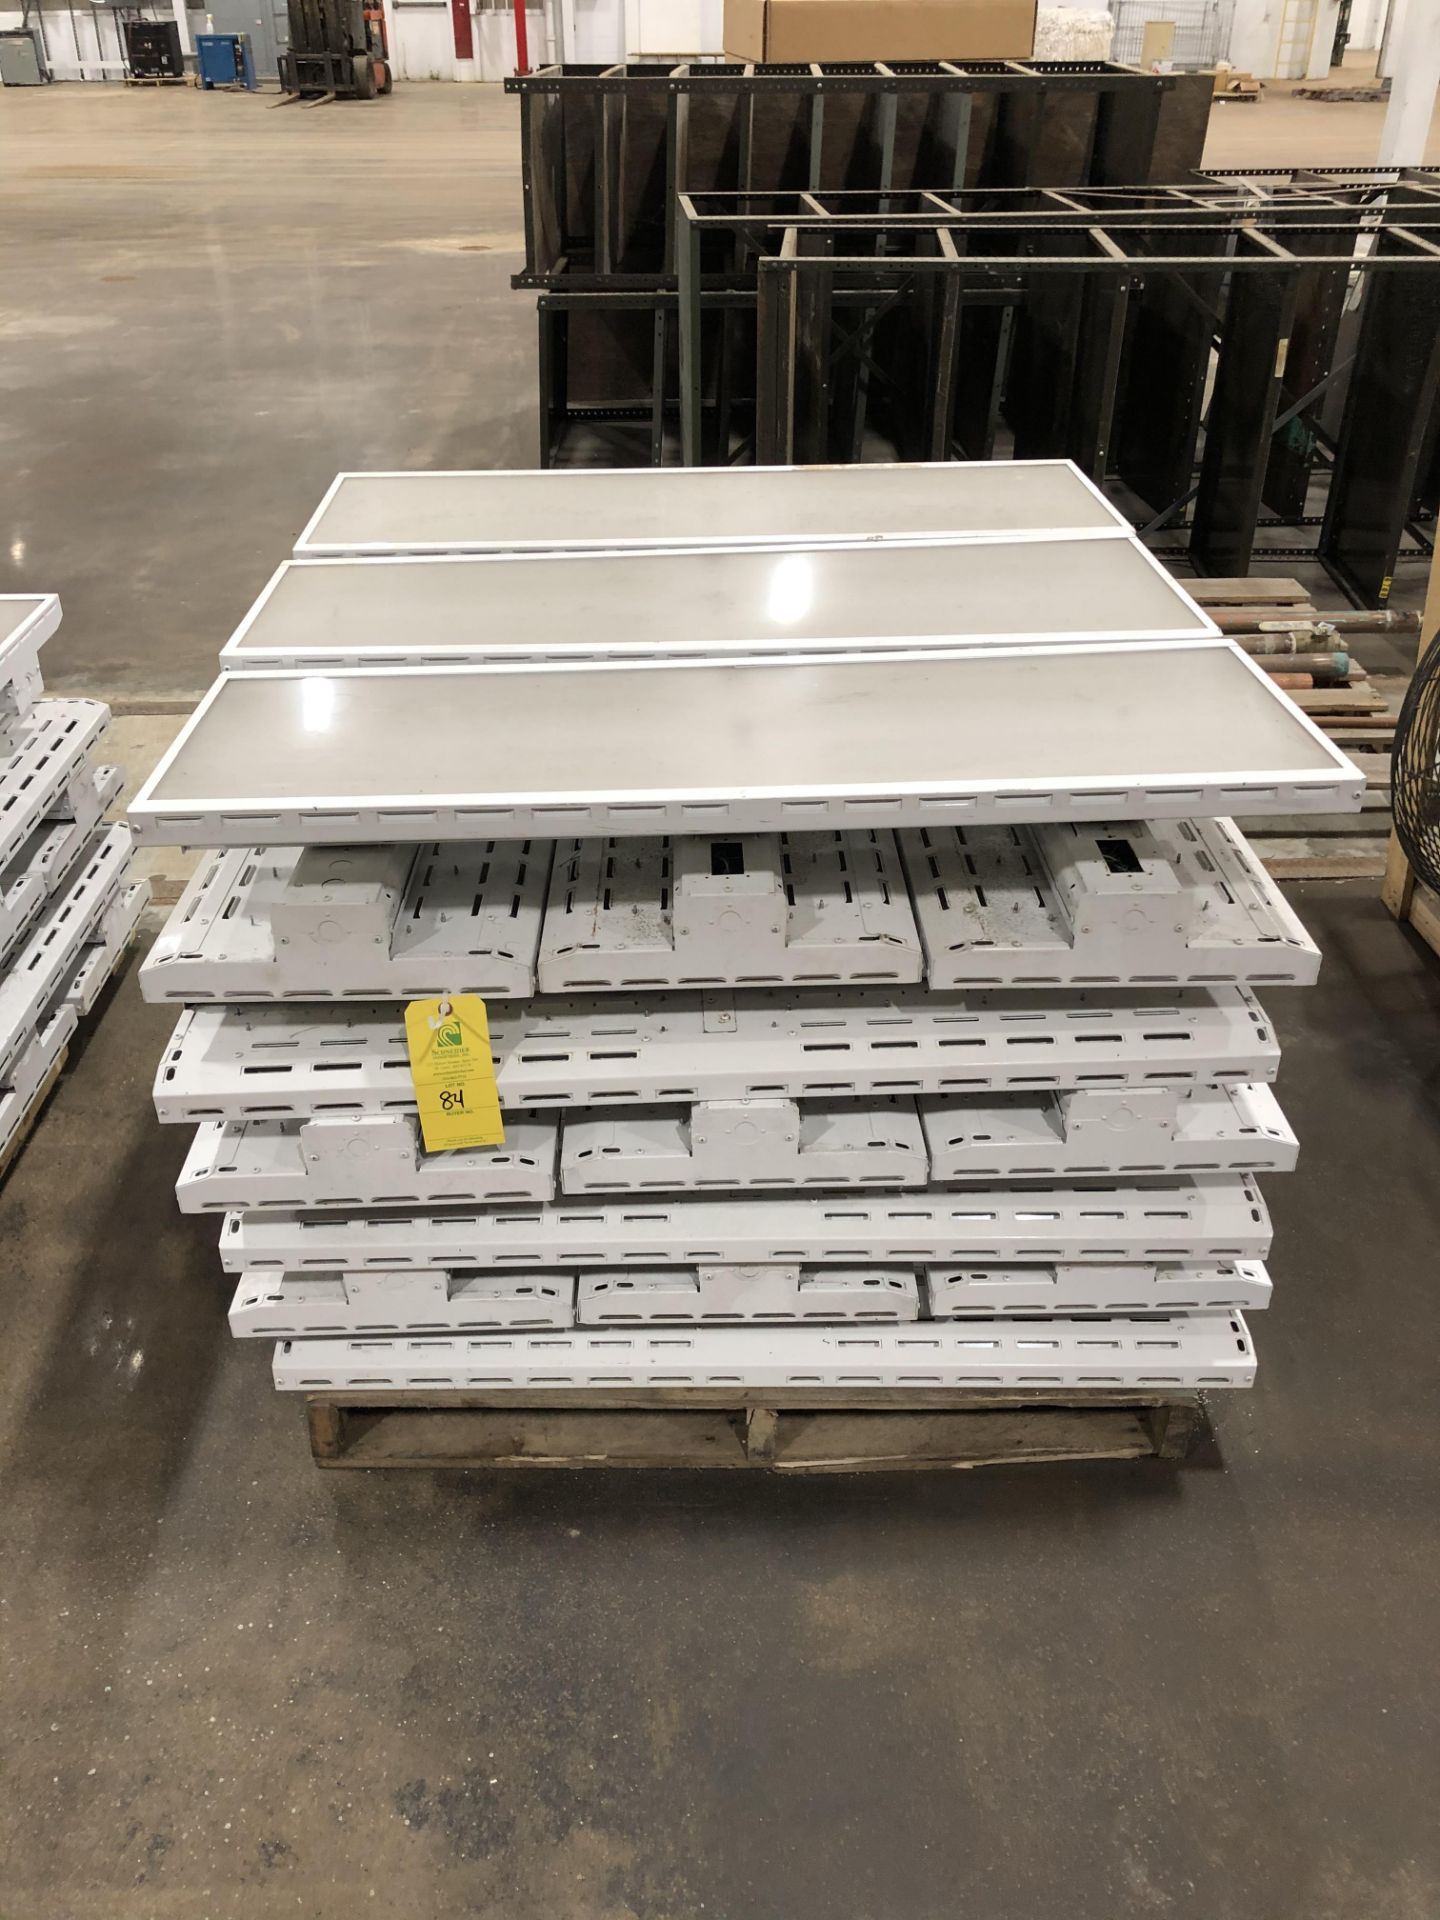 Lot 84 - Pallet of Commercial LED Warehouse lights, Rigging/ Loading Fee: $25